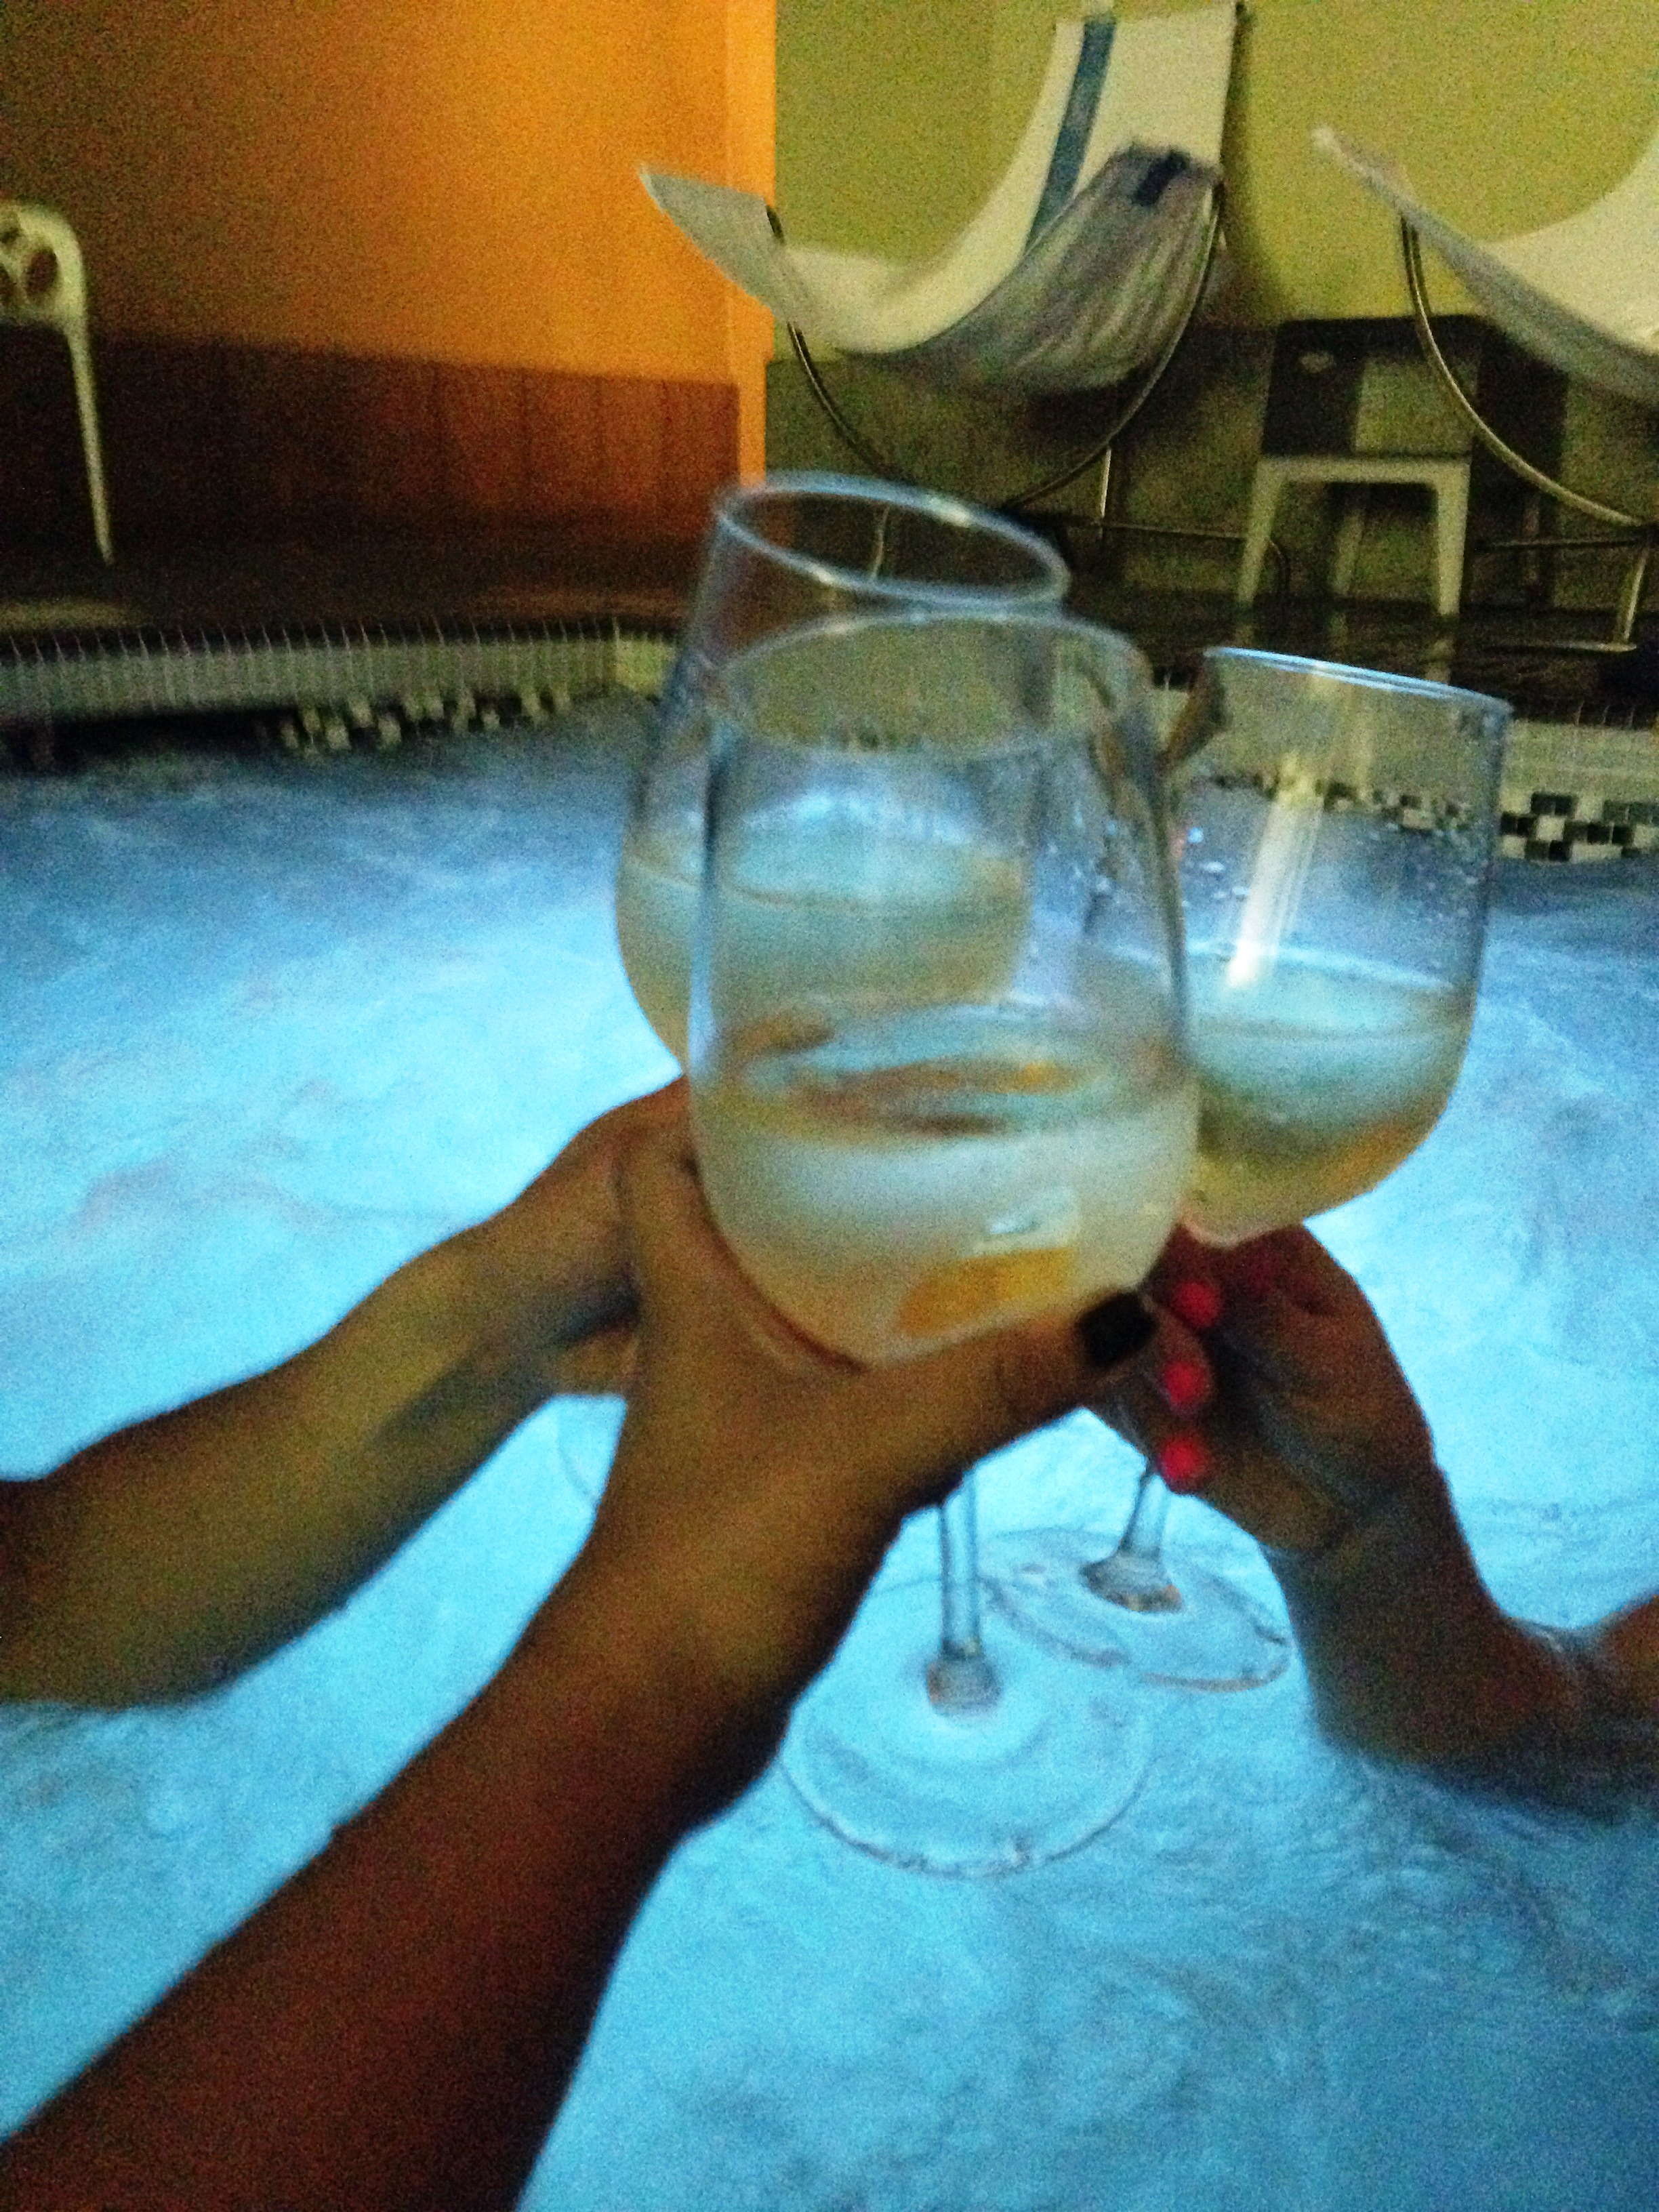 652 Massage and Bubbles at Great Jones Spa